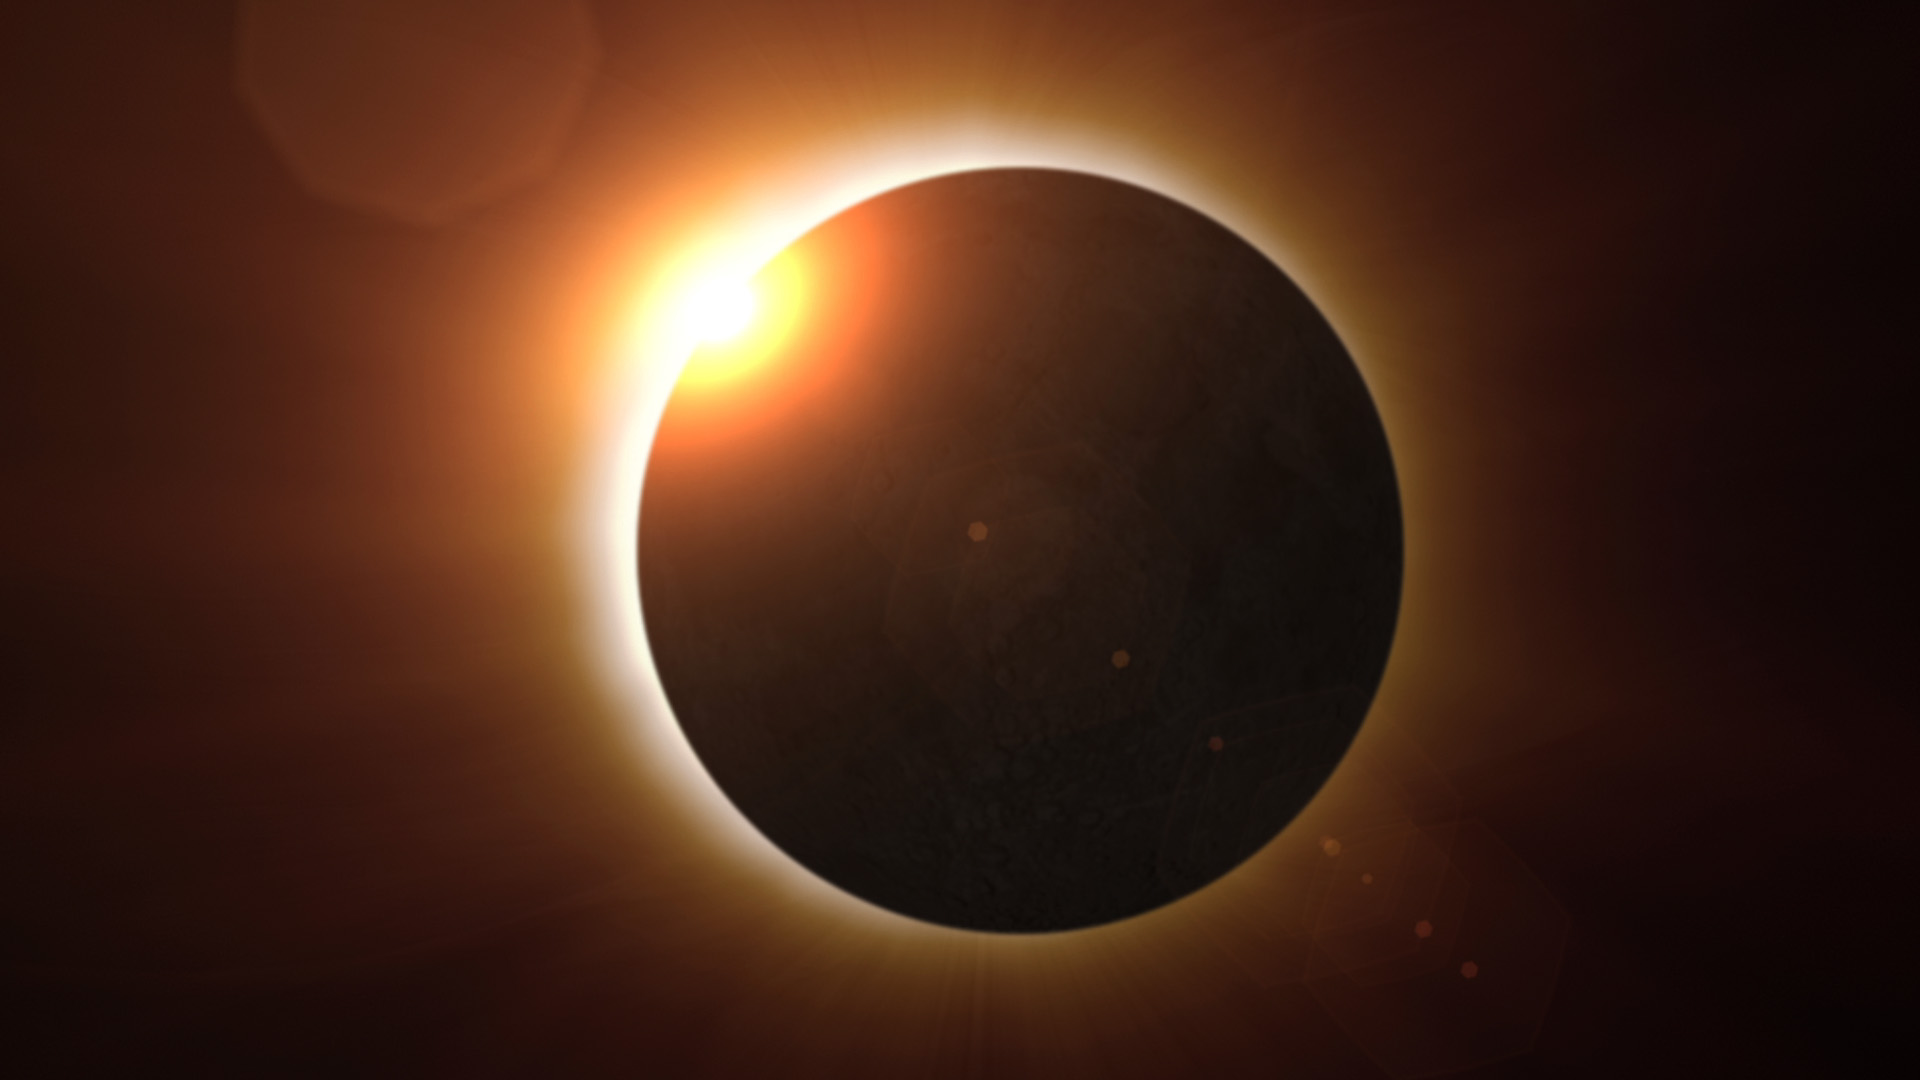 Challenges of the Eclipse